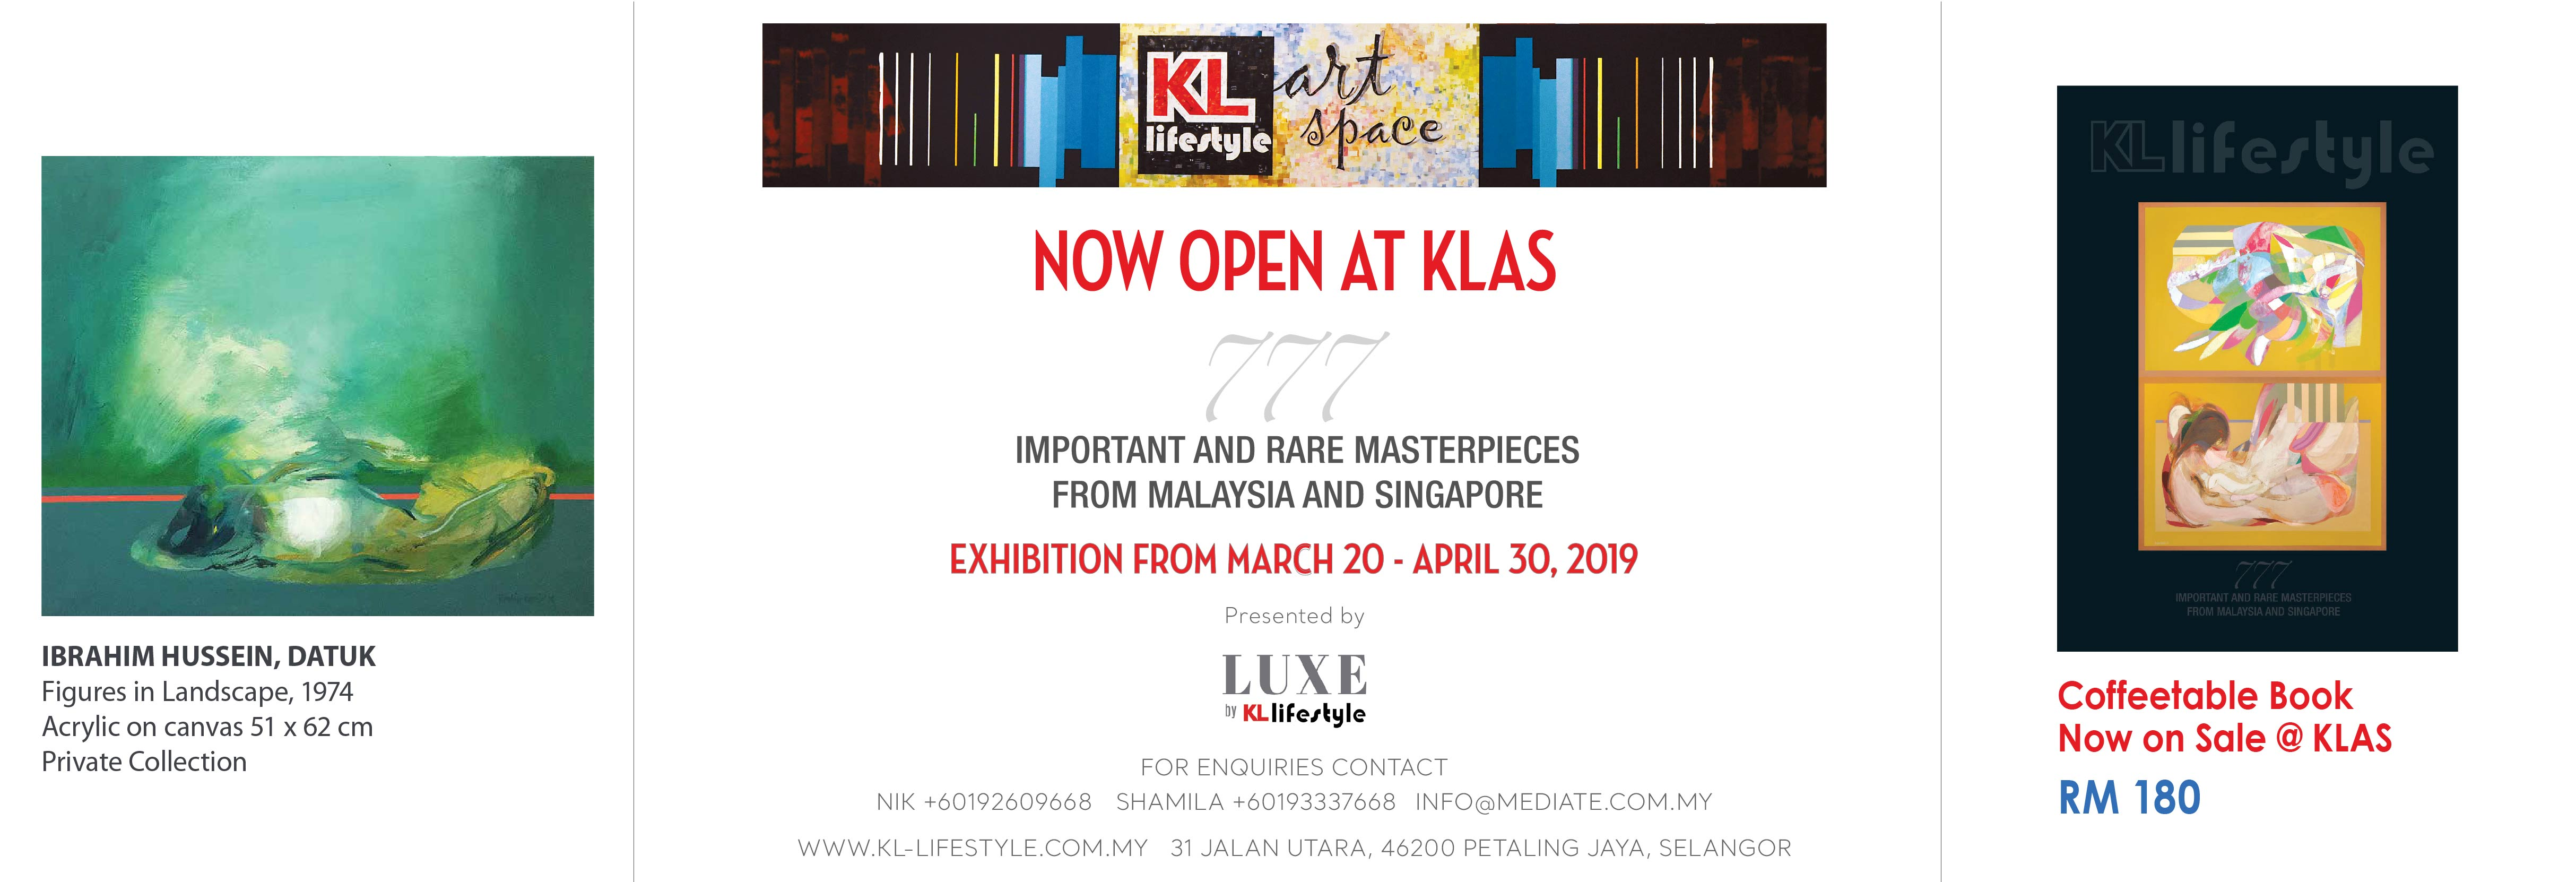 777 NOW OPEN AT KLAS COFFEE BOOK WEB BANNER-07